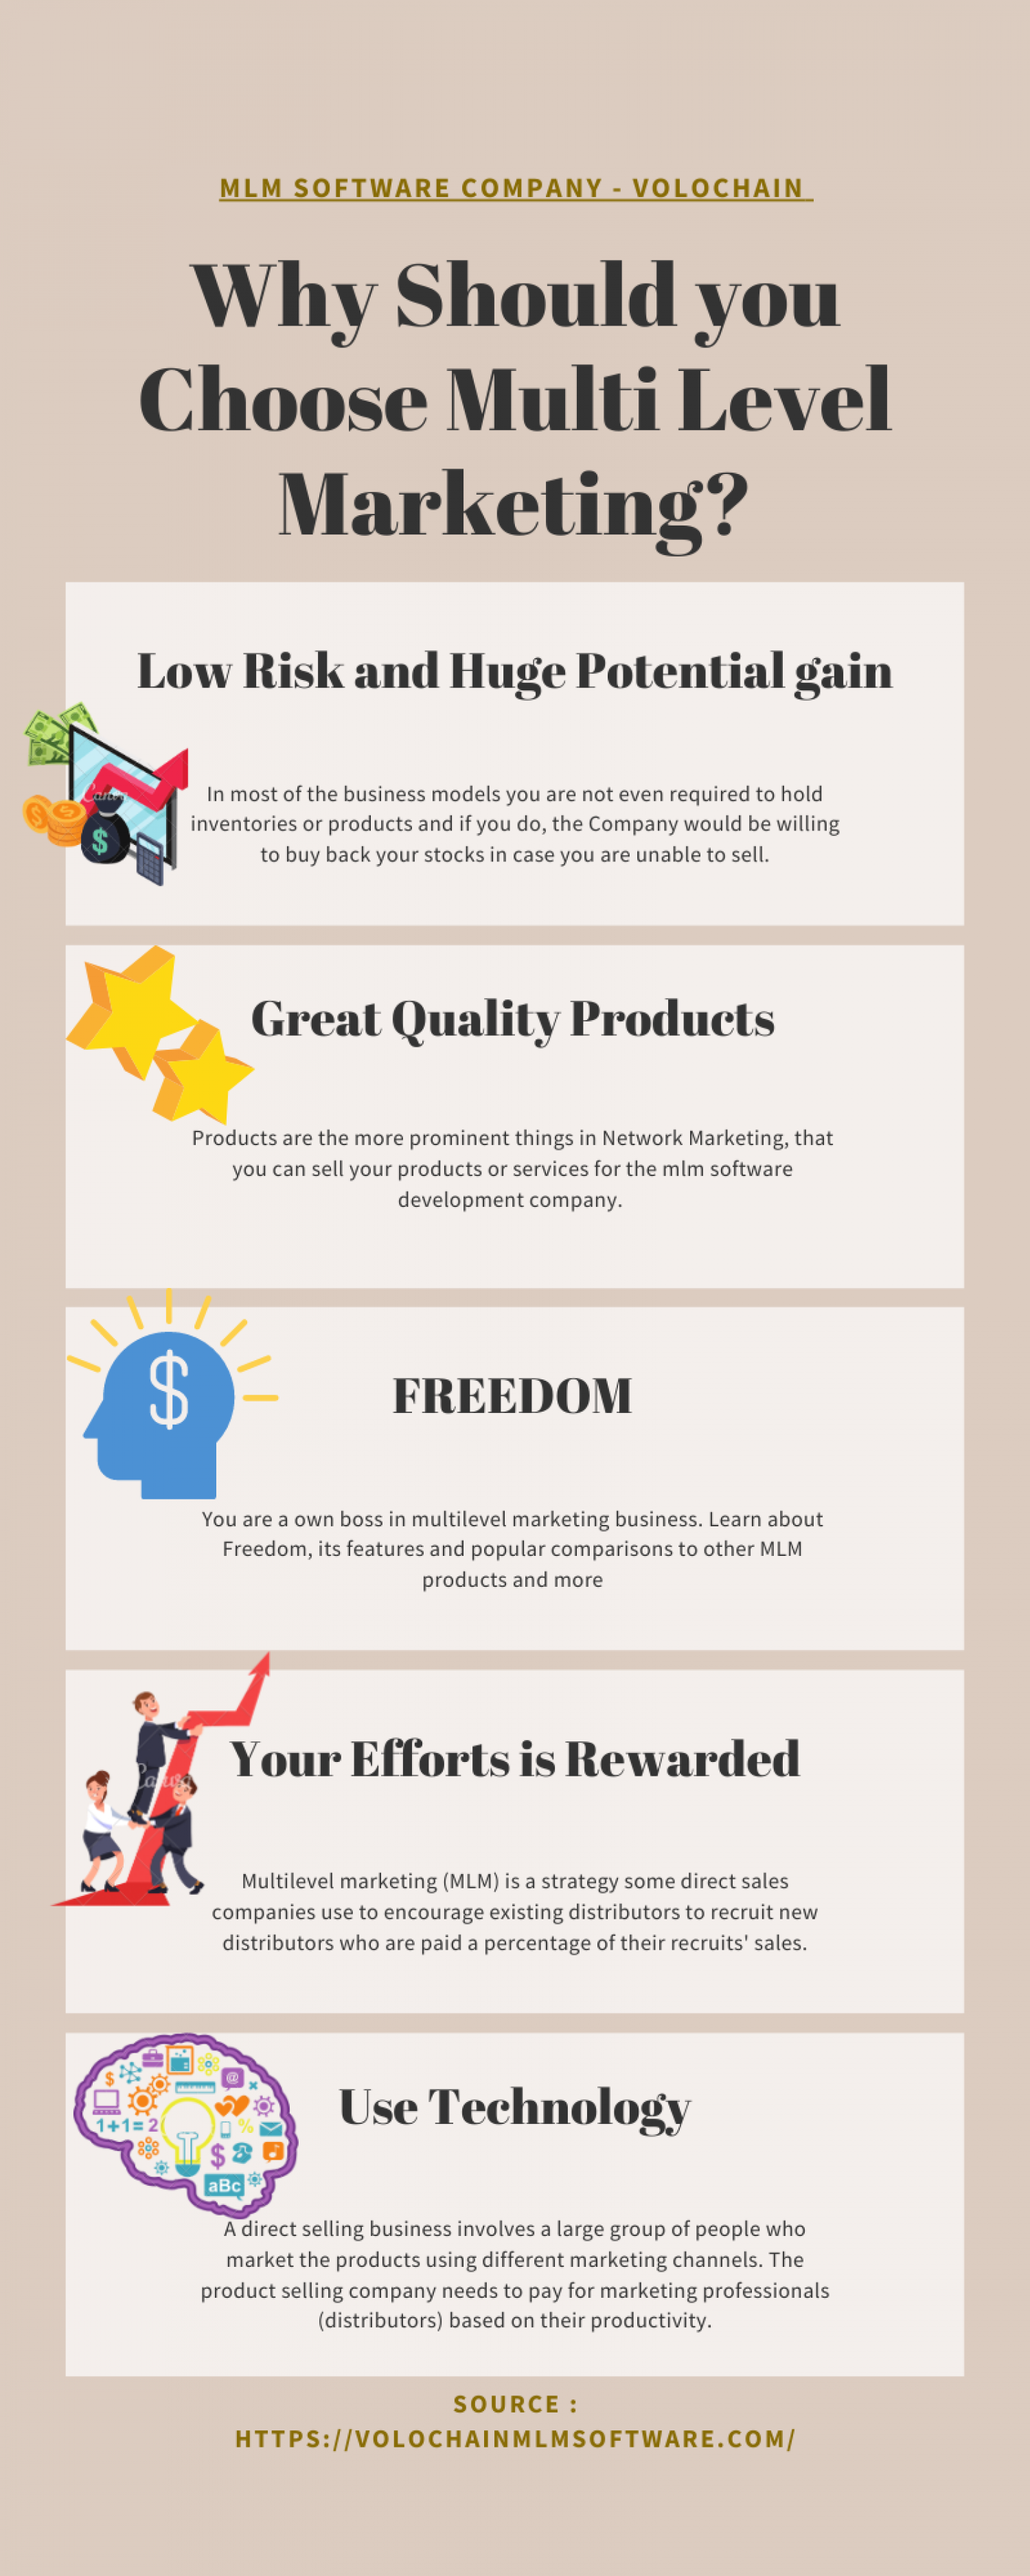 Why Should you choose Multi Level Marketing? Infographic